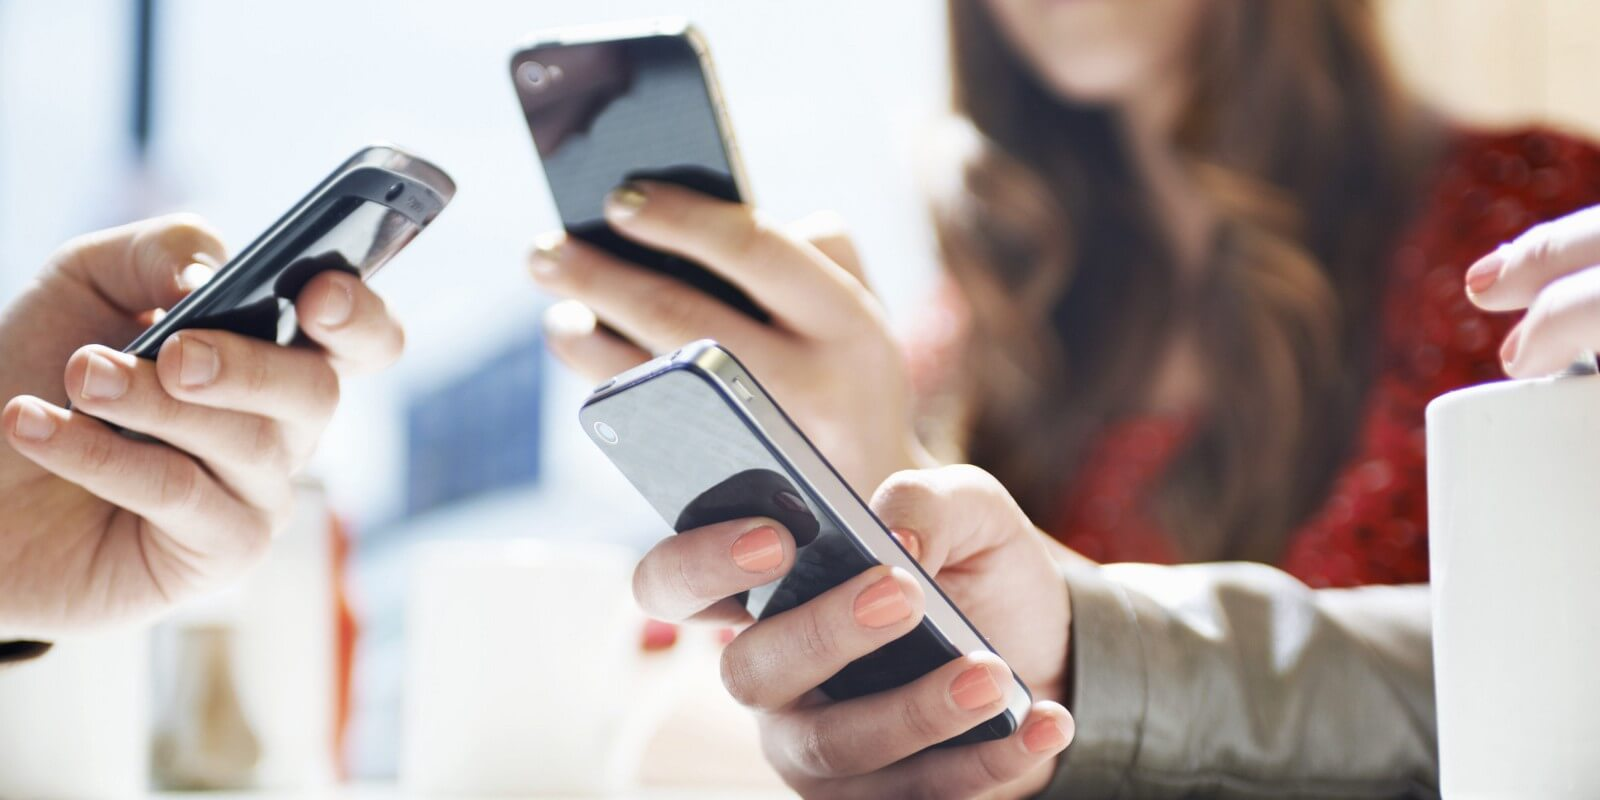 Do cell phones cause cancer? Unlikely, but activists are skeptical